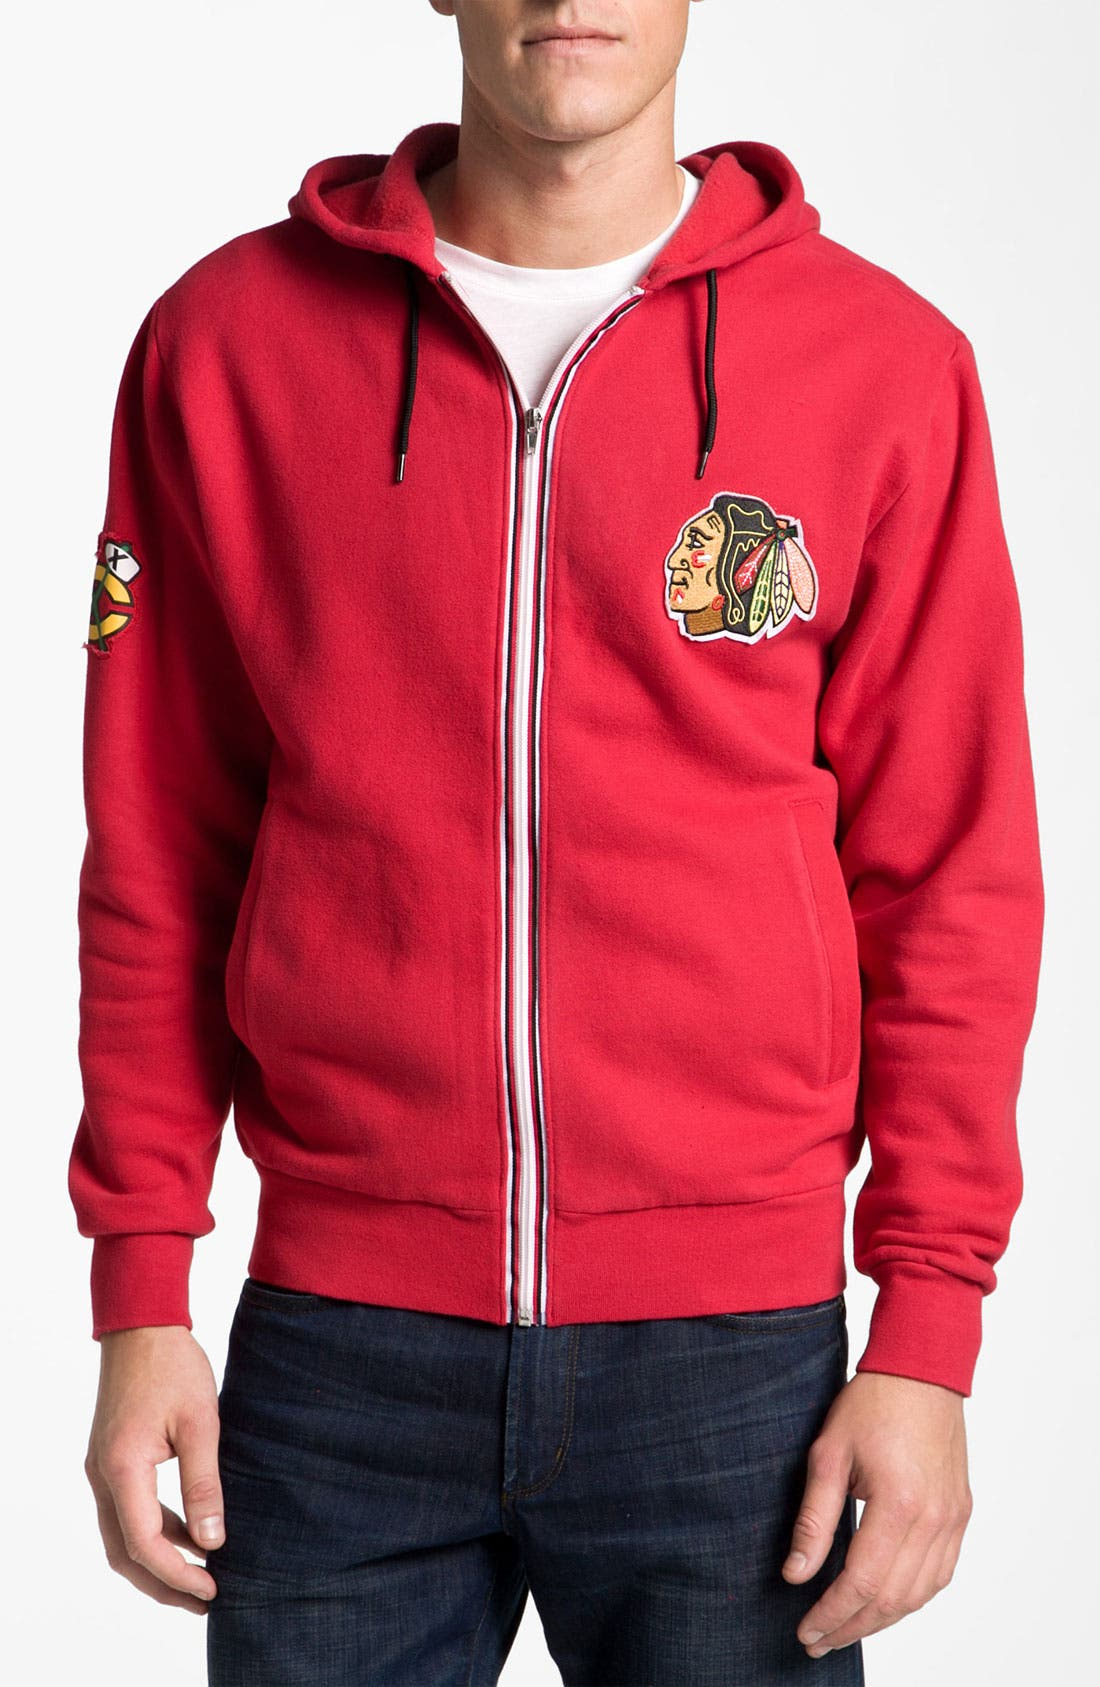 'Chicago Blackhawks' Hoodie,                             Main thumbnail 1, color,                             600